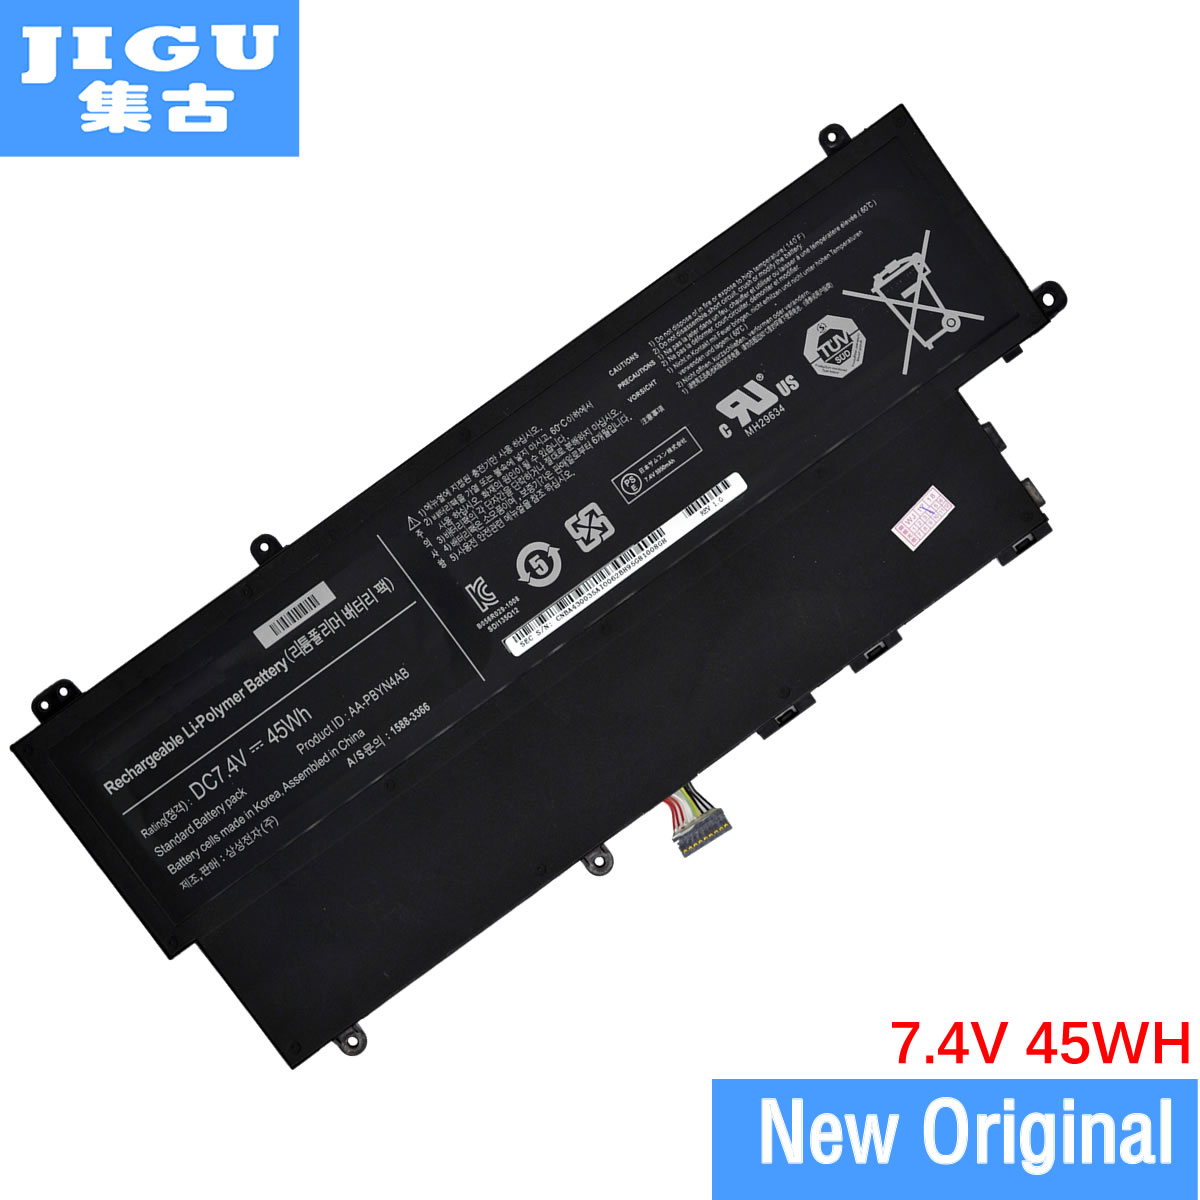 JIGU AA-PBYN4AB Original Laptop Battery For SAMSUNG 530U3 530U3B 530U3C NP530U3C PBYN4AB Batteries 7.4V 45WH 7 5v 52wh new original aa plwn4ab laptop battery for samsung aa pbyn4ab 530u3b 530u3c 535u3c 532u3x 540u3c